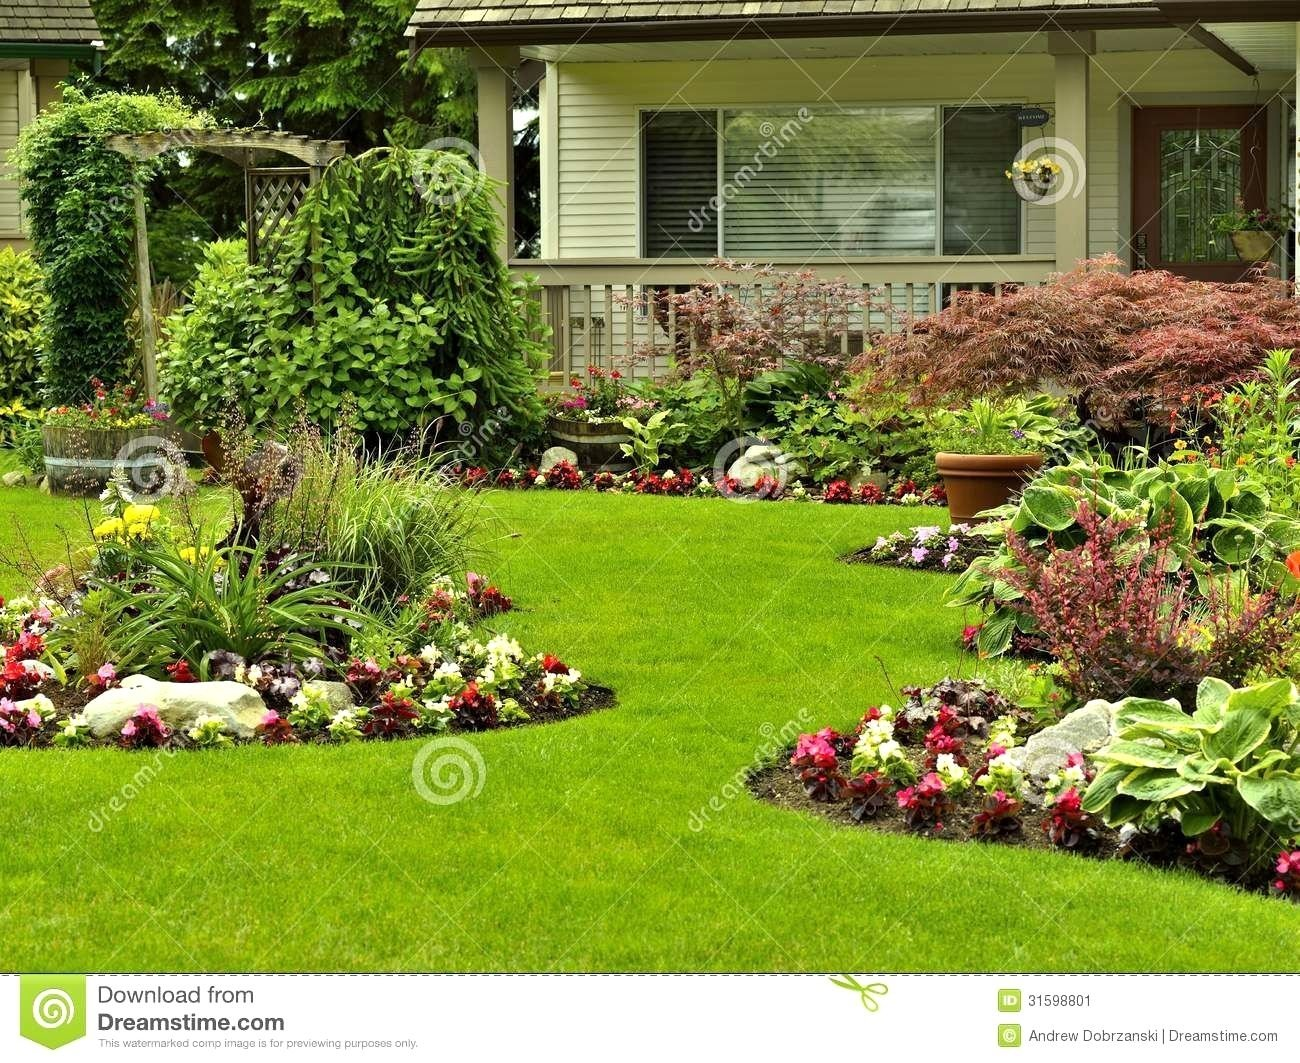 10 Spectacular Front Yard Flower Bed Ideas landscaping ideas for front yard flower bed the garden inspirations 2020